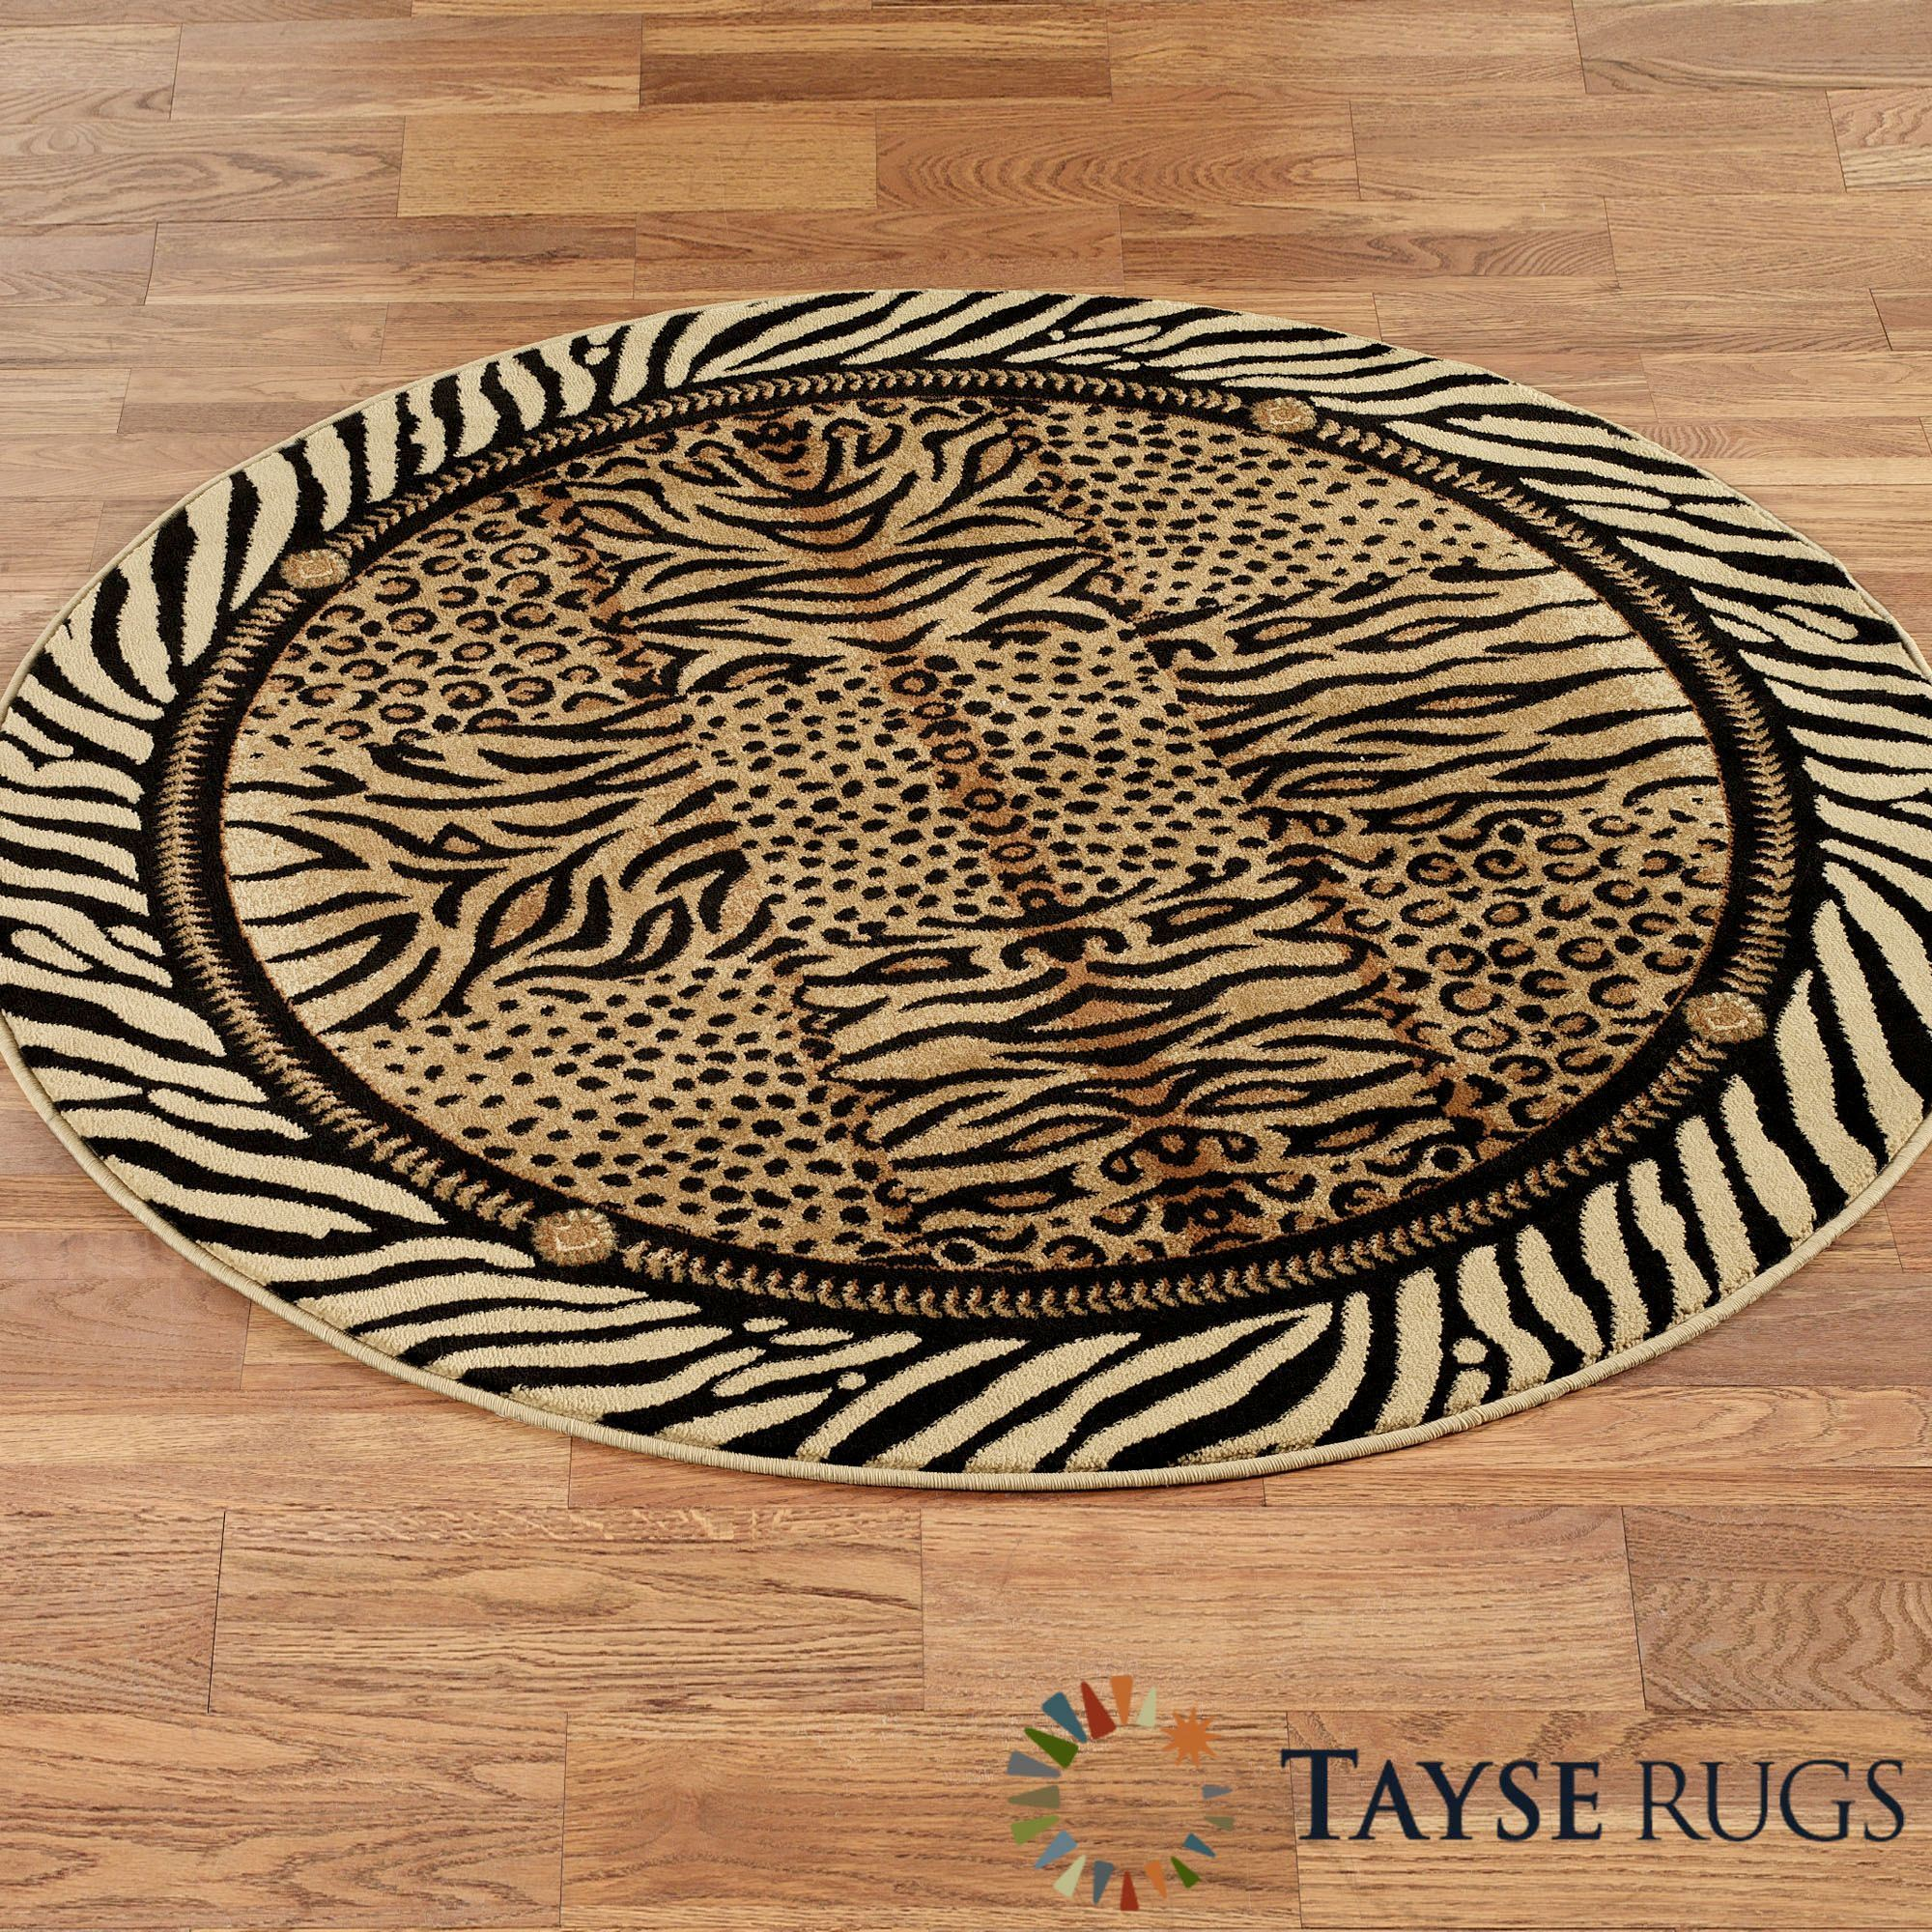 Dog Themed Outdoor Rugs: Festival Jungle Animal Print Round Rug